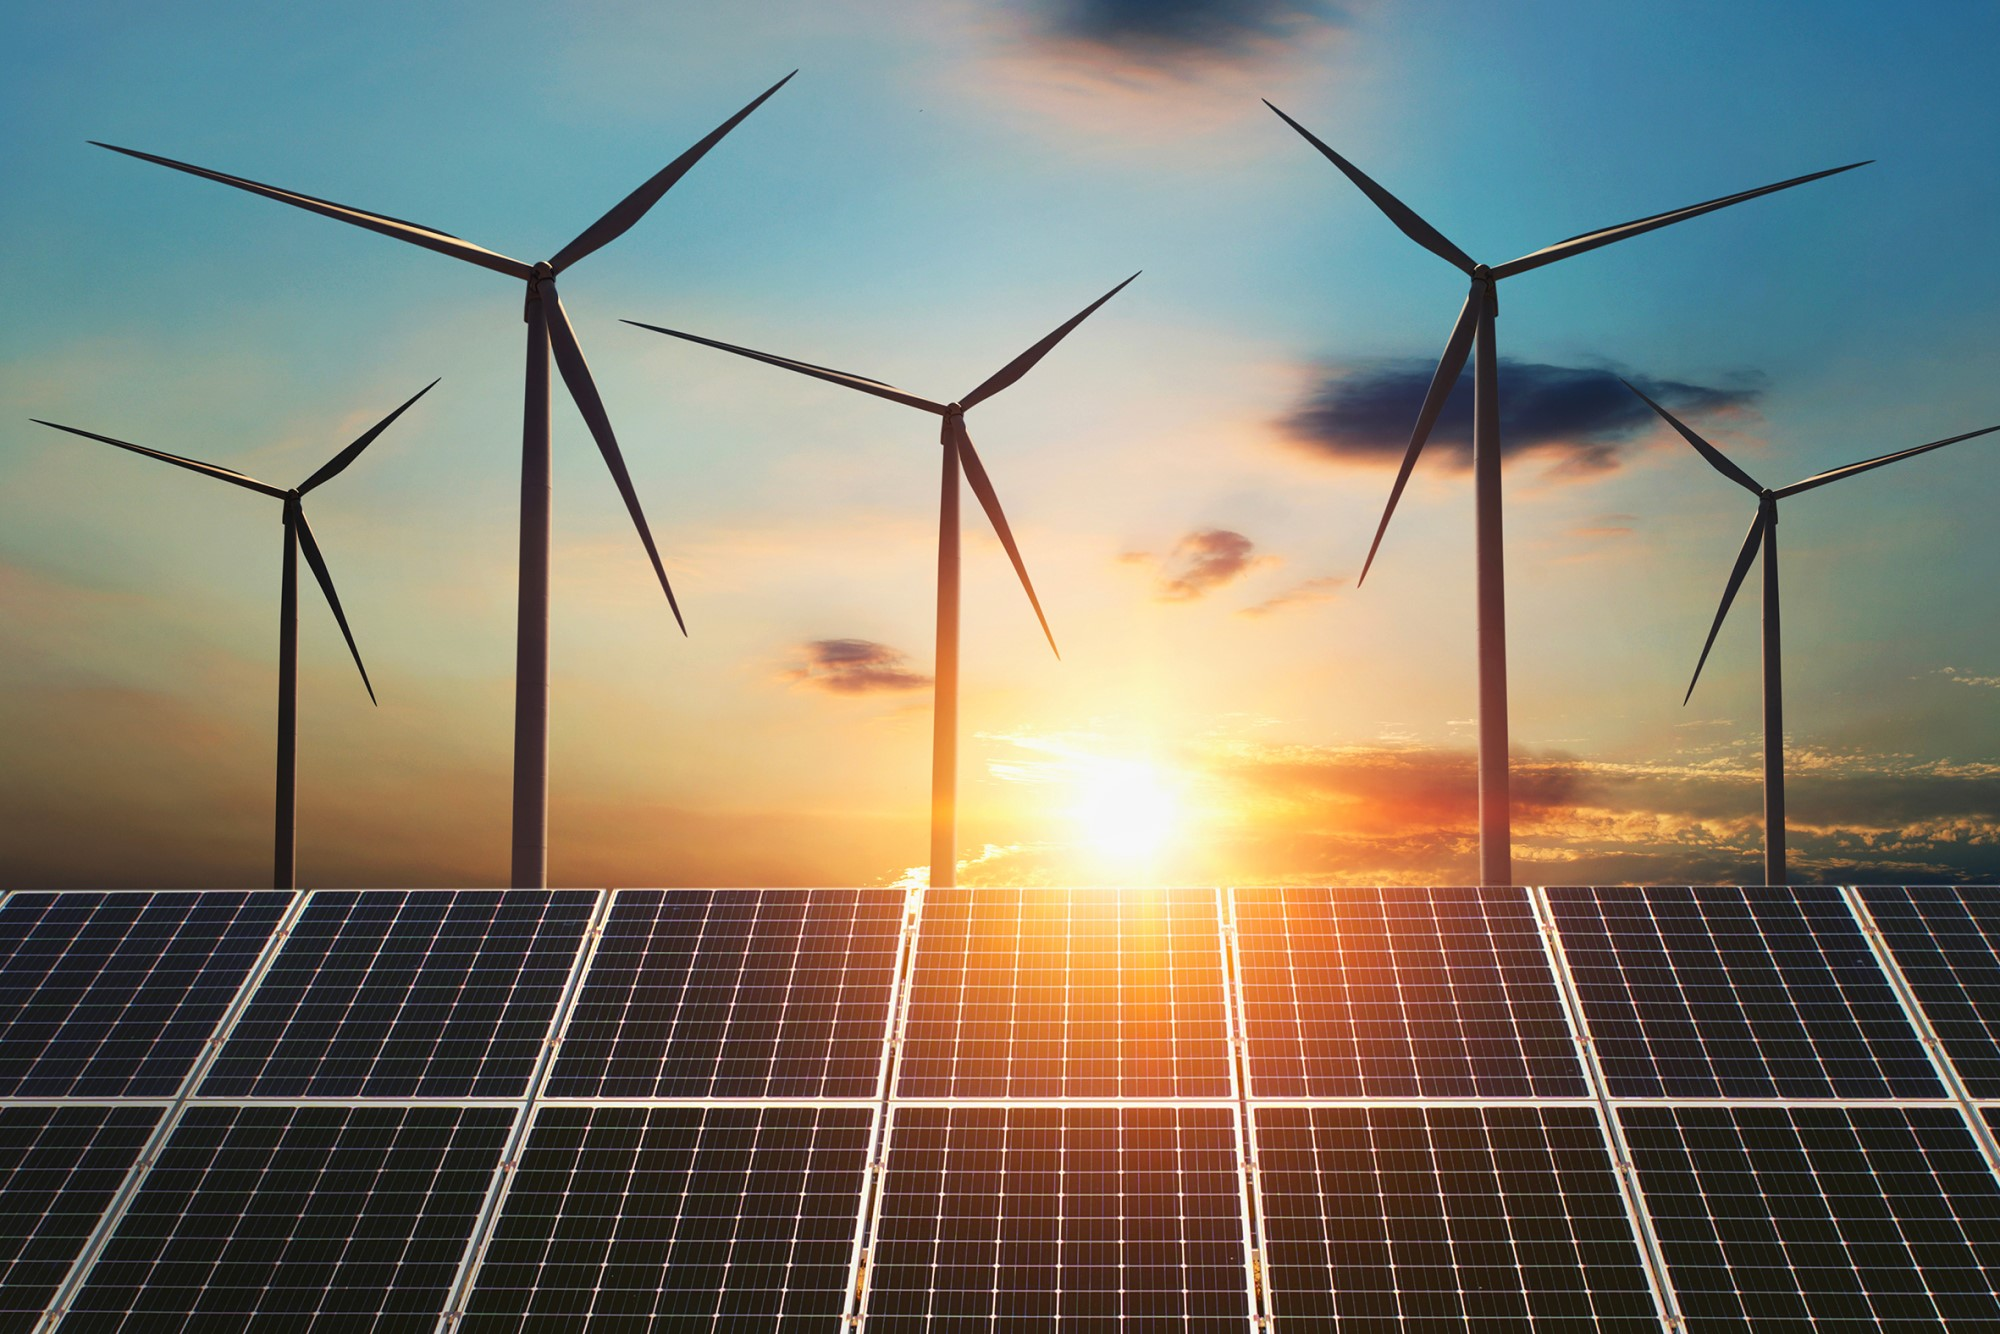 Green energy risk warning for East Midlands developers and landowners as renewable projects gather pace